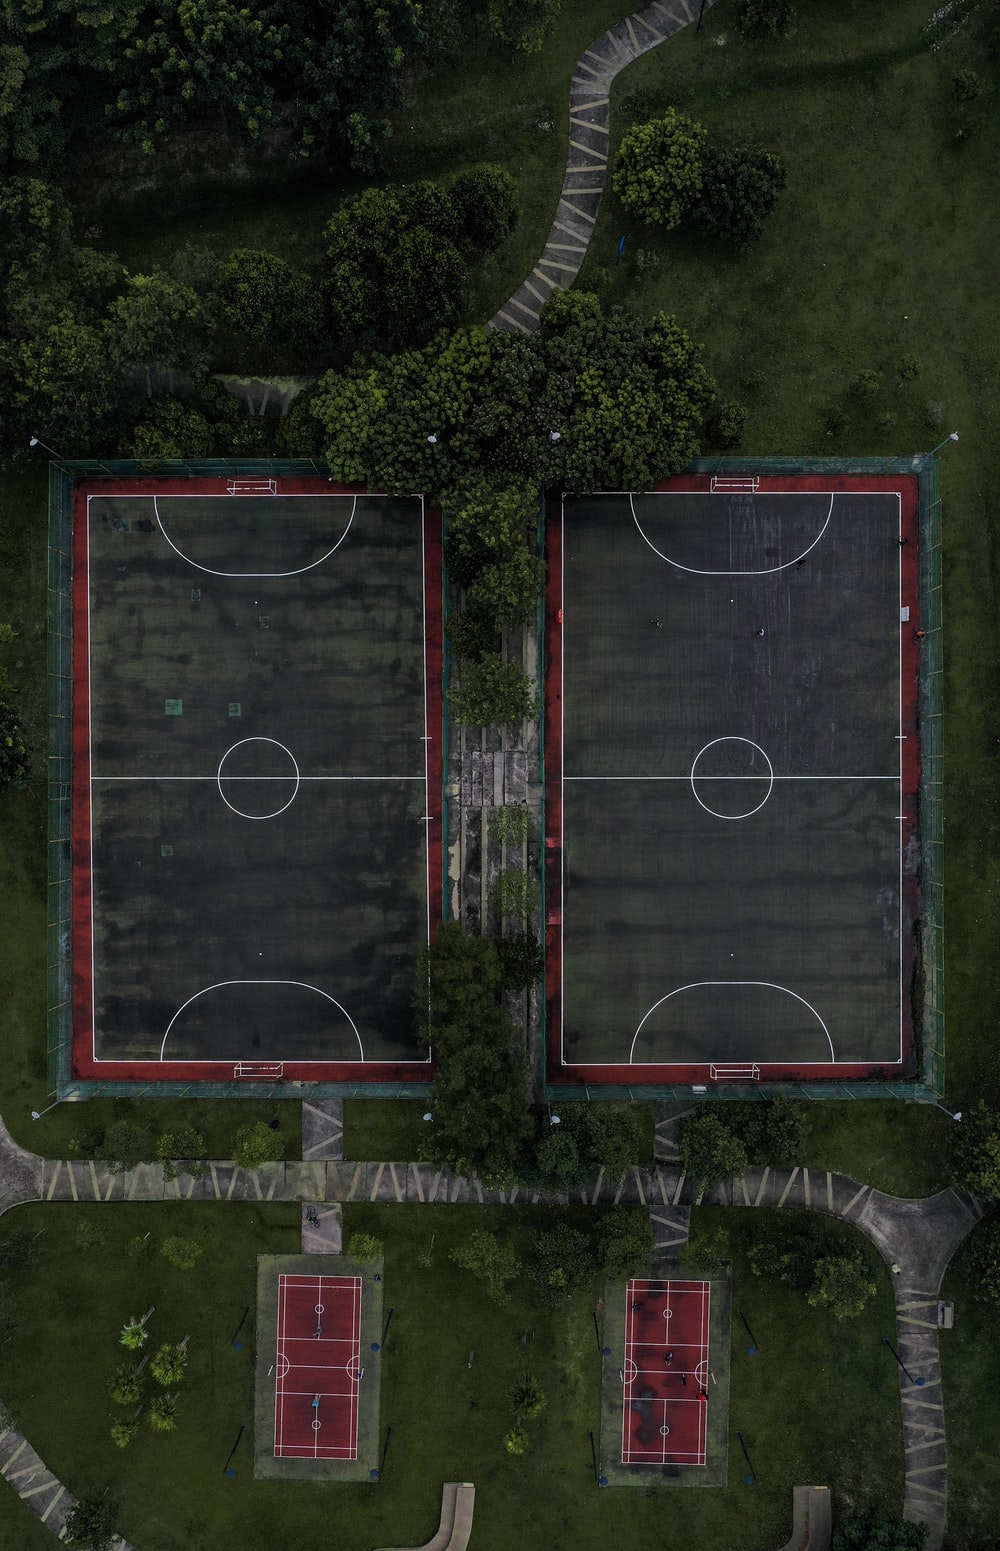 aerial photography of basketball courts